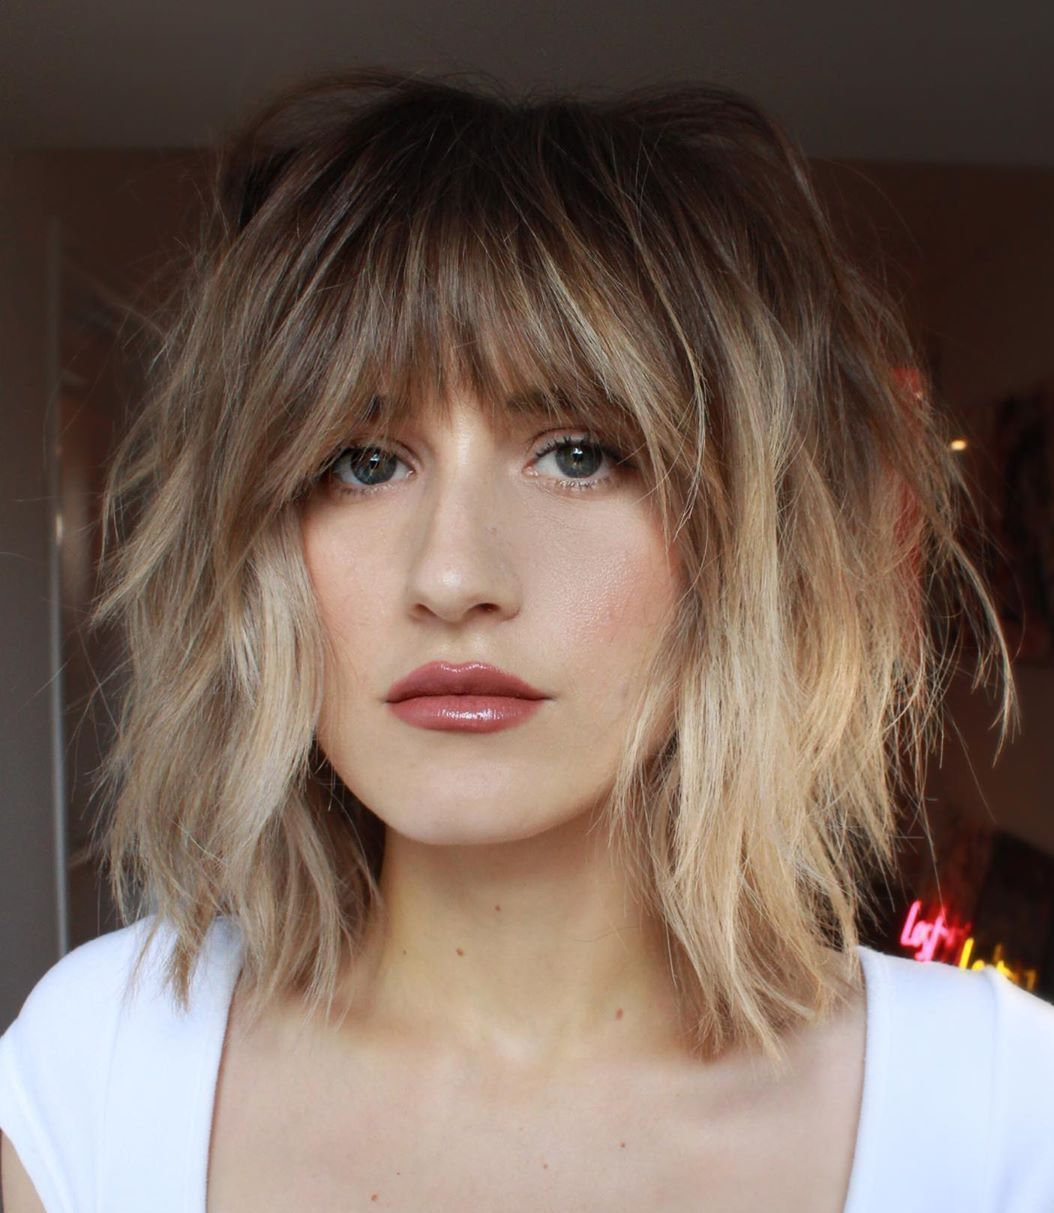 50 Most Trendy And Flattering Bangs For Round Faces In 2021 Hadviser Bangs For Round Face Round Face Haircuts Hairstyles With Bangs